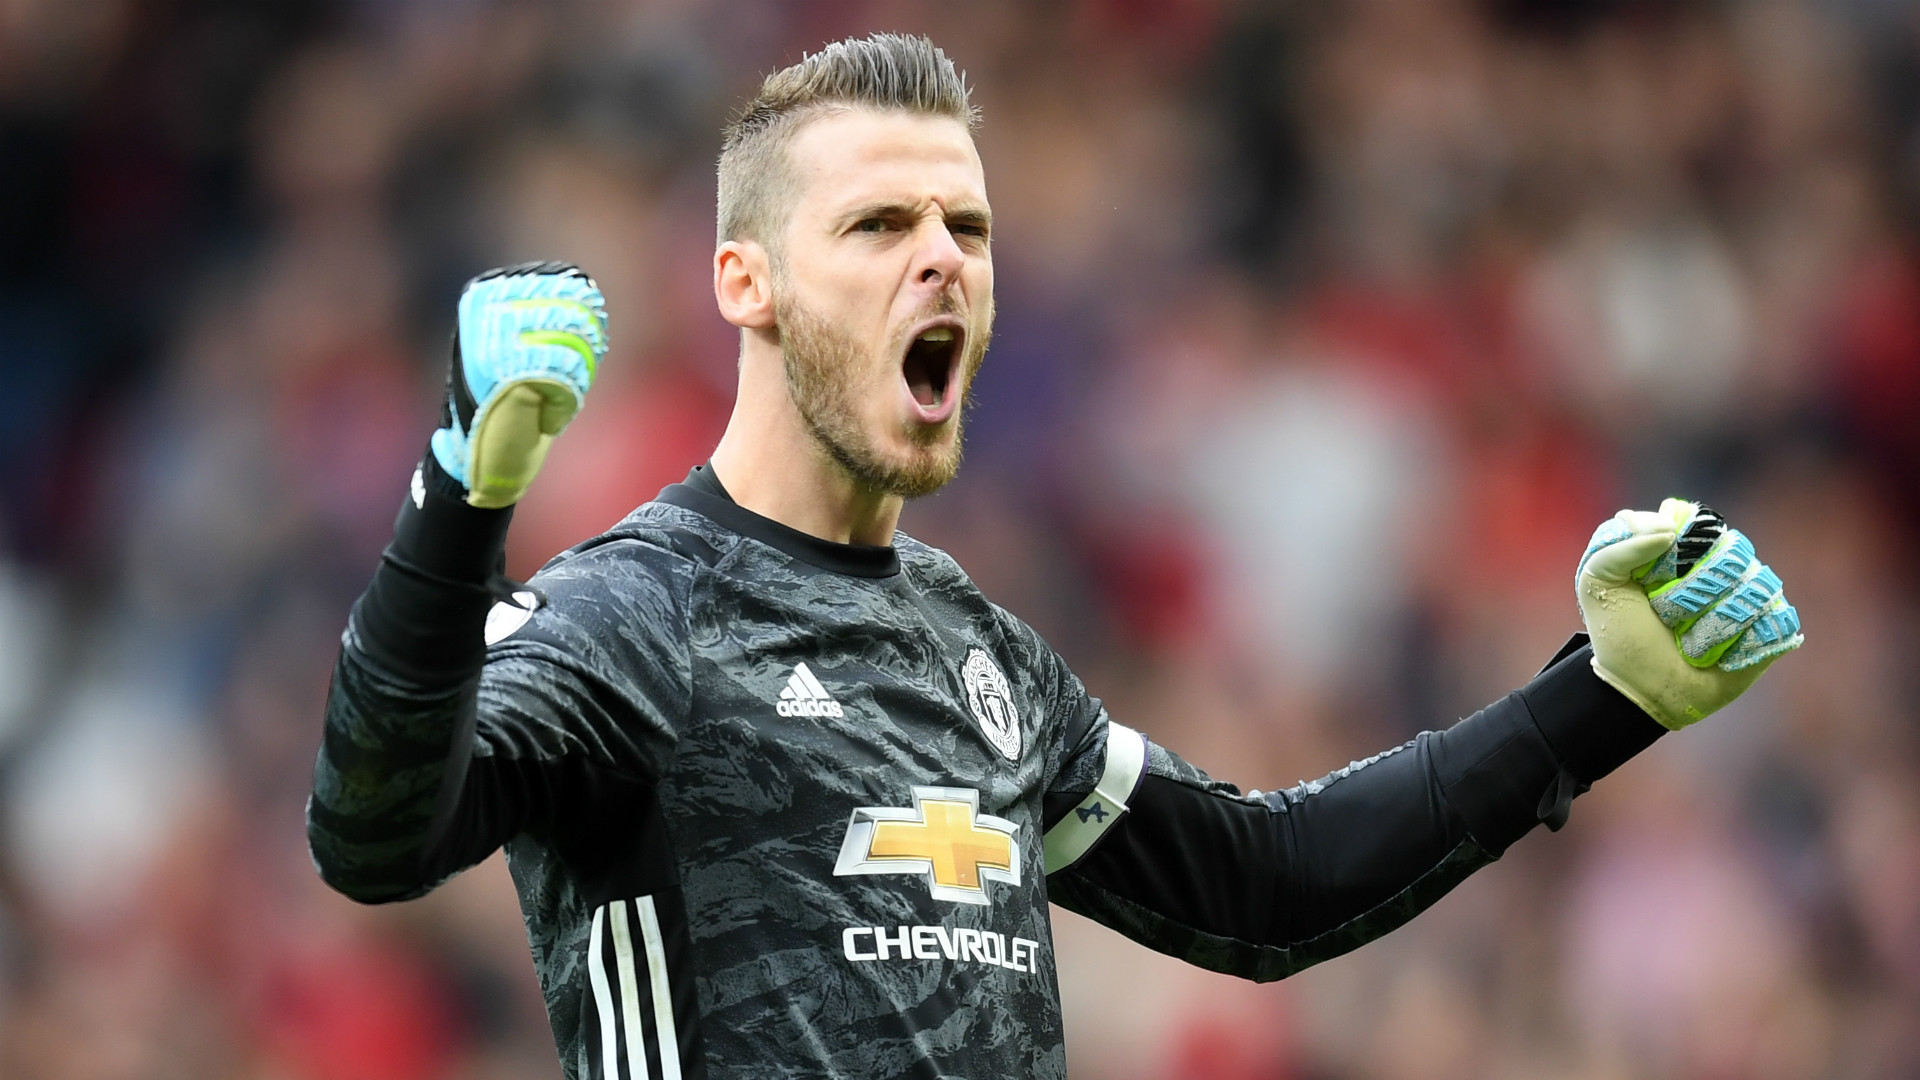 'De Gea is staying now and Man Utd move on' – Schmeichel says keeper contract is sorted